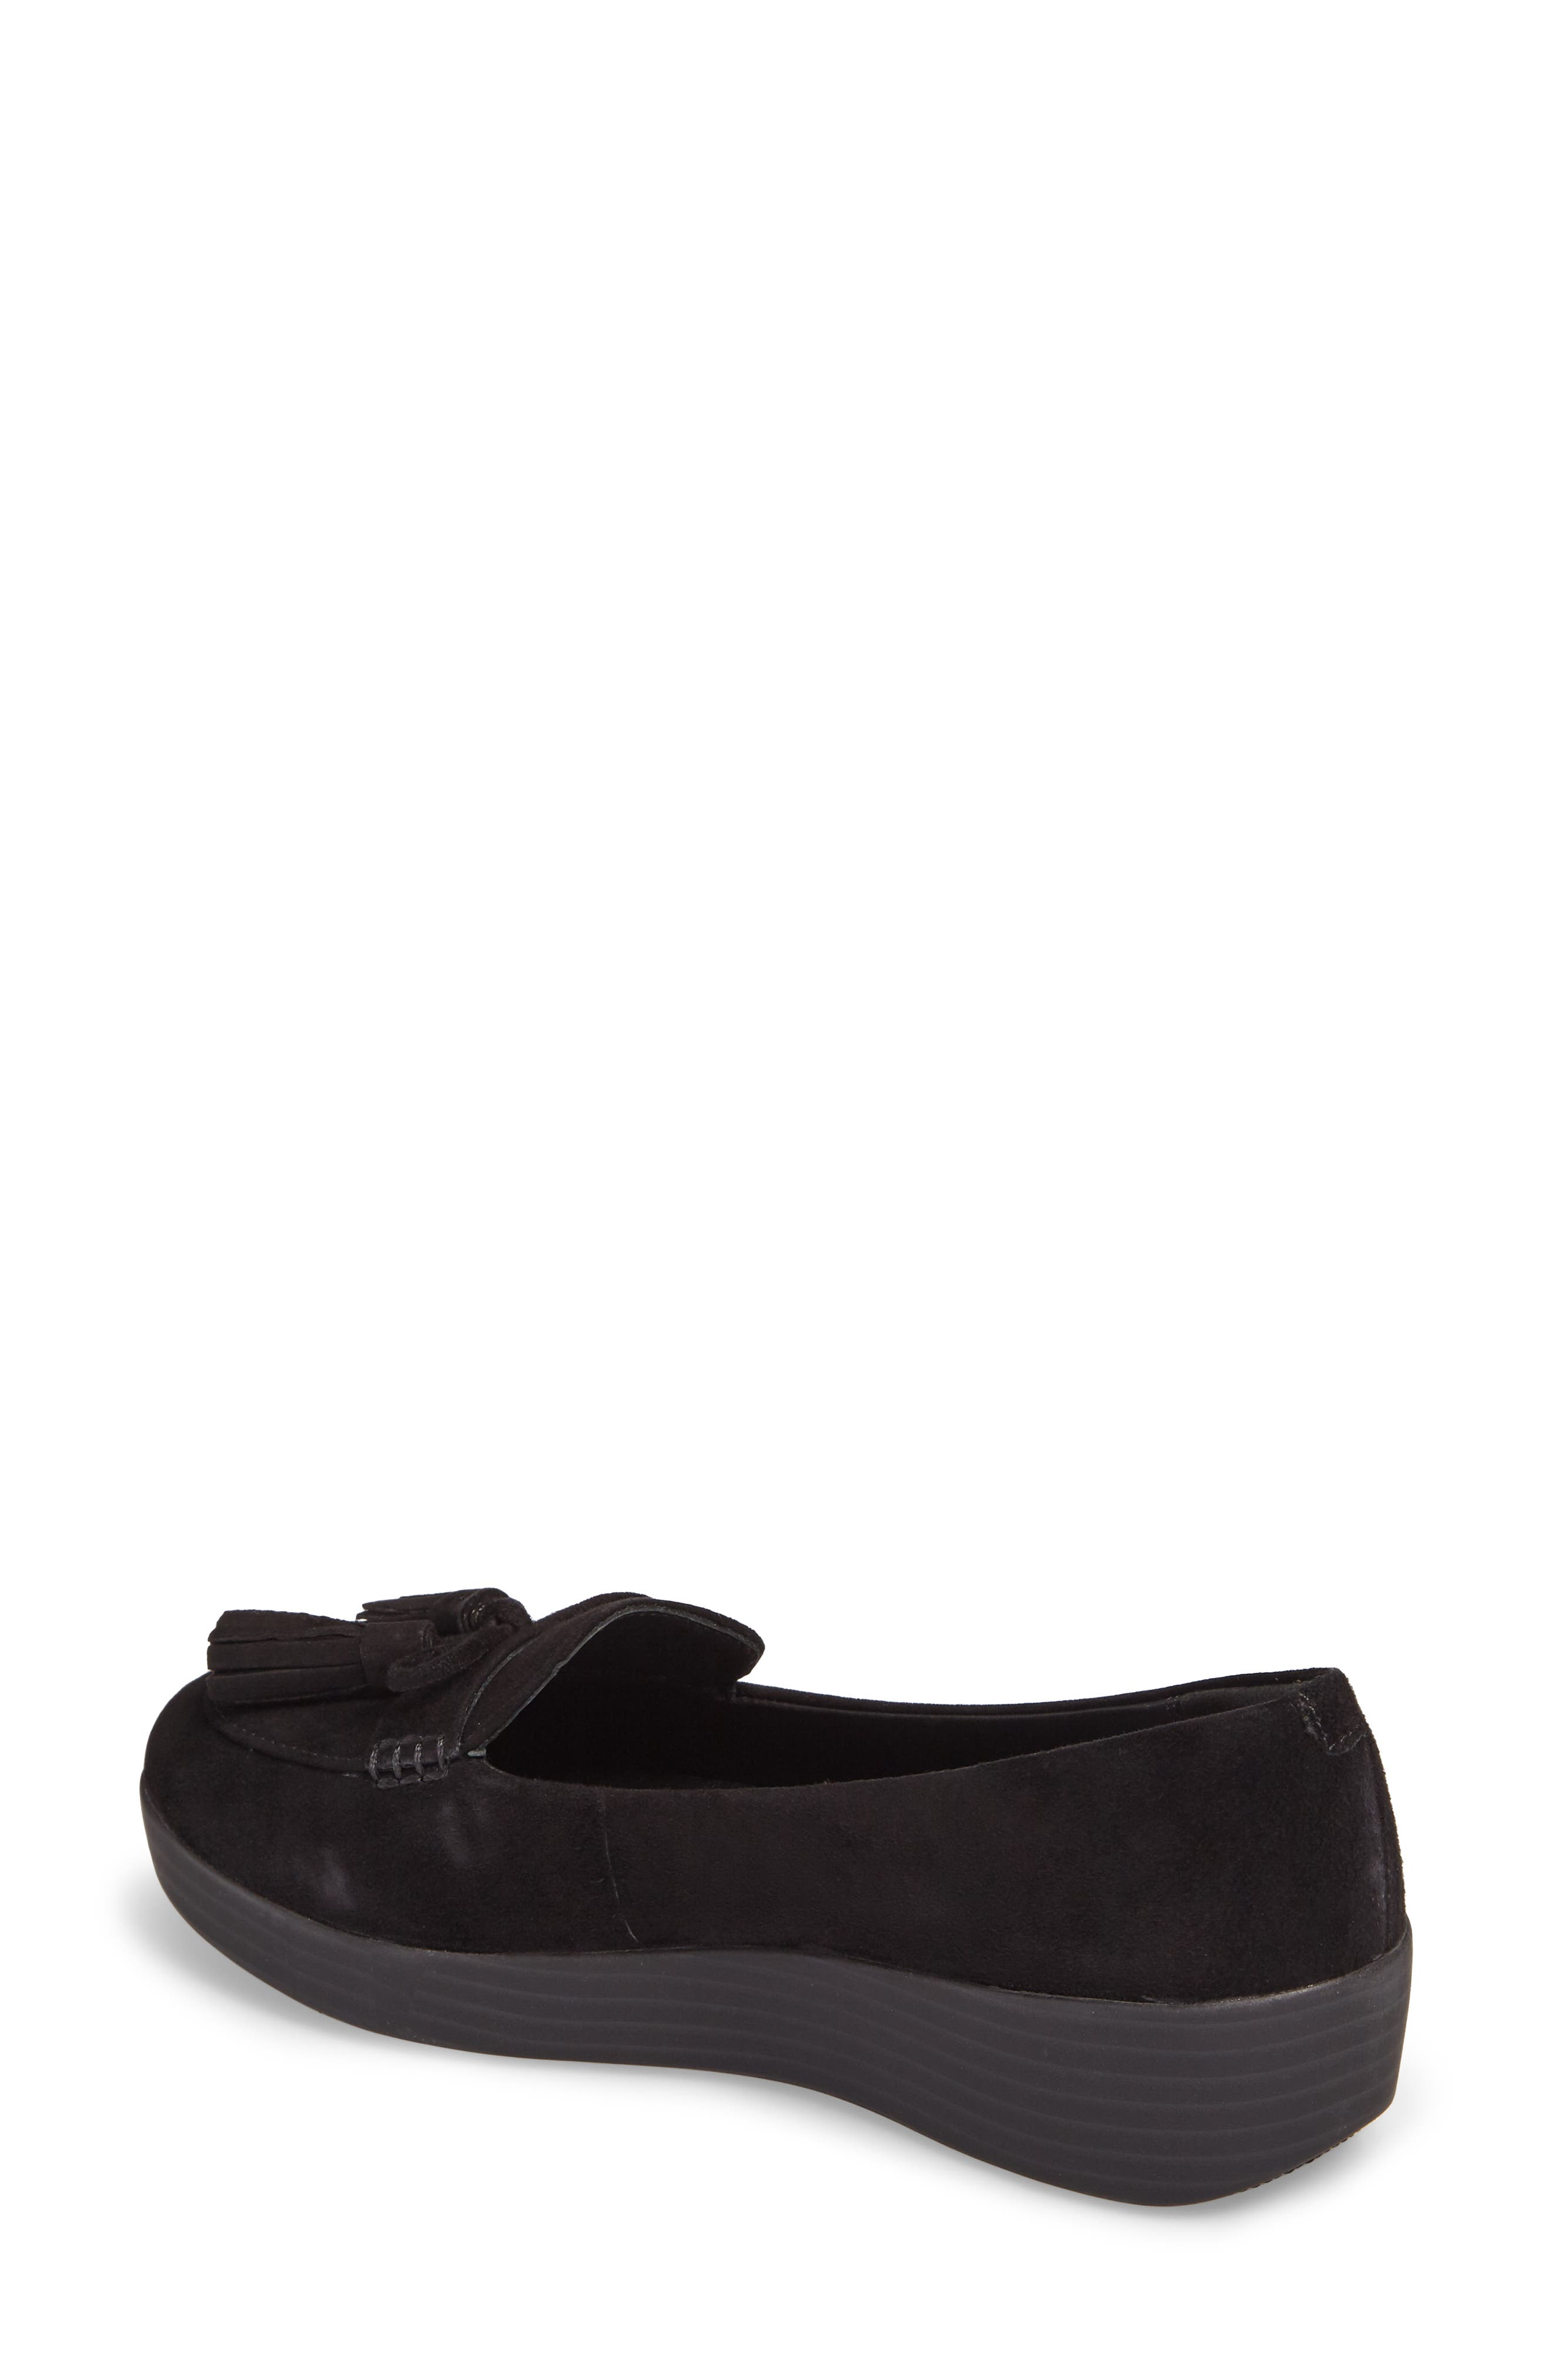 Tassel Bow Sneakerloafer<sup>™</sup> Water Repellent Flat,                             Alternate thumbnail 2, color,                             001